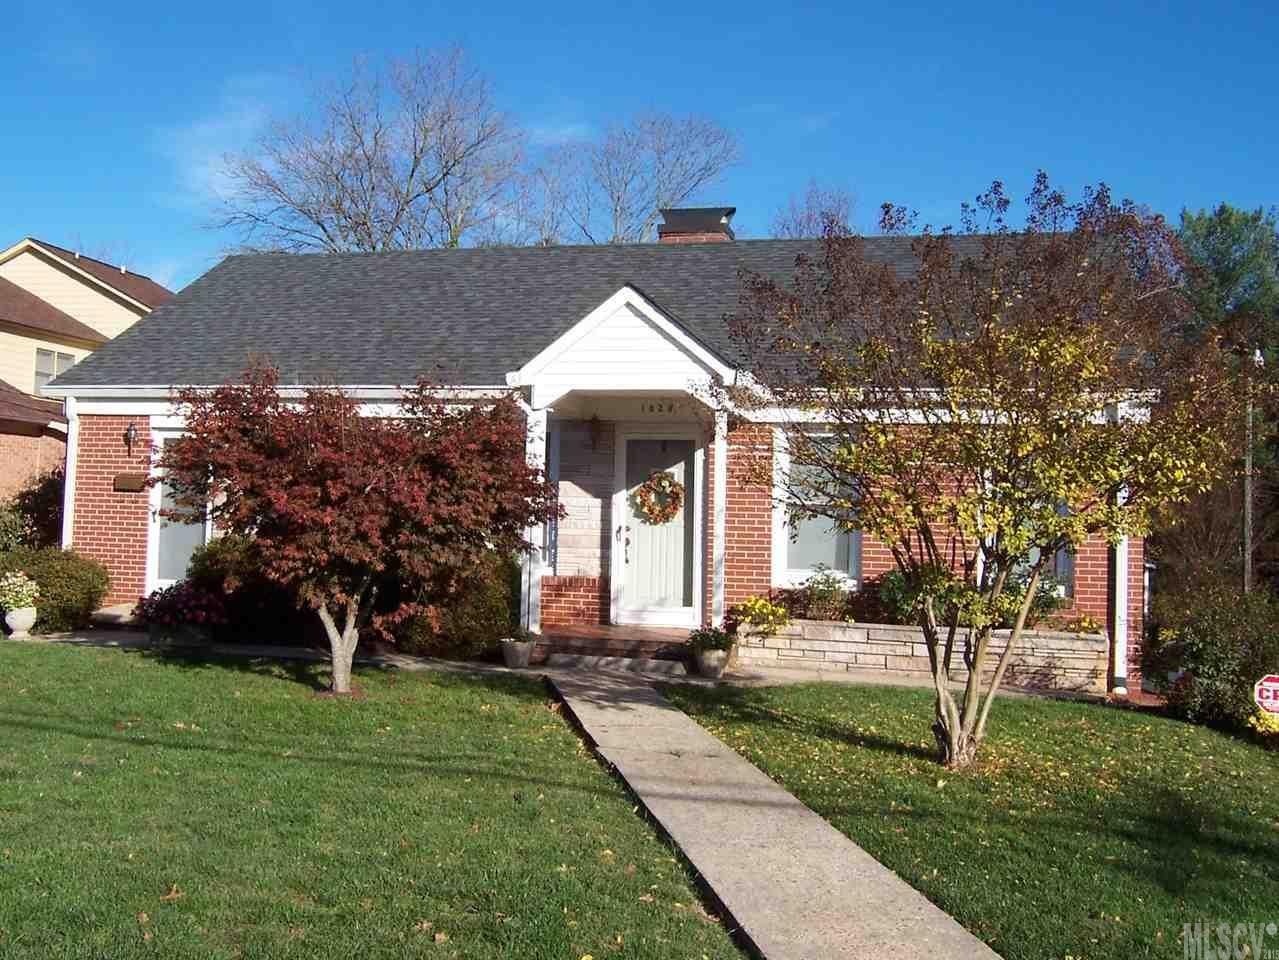 1028 4th Street Dr NW, Hickory, NC 28601